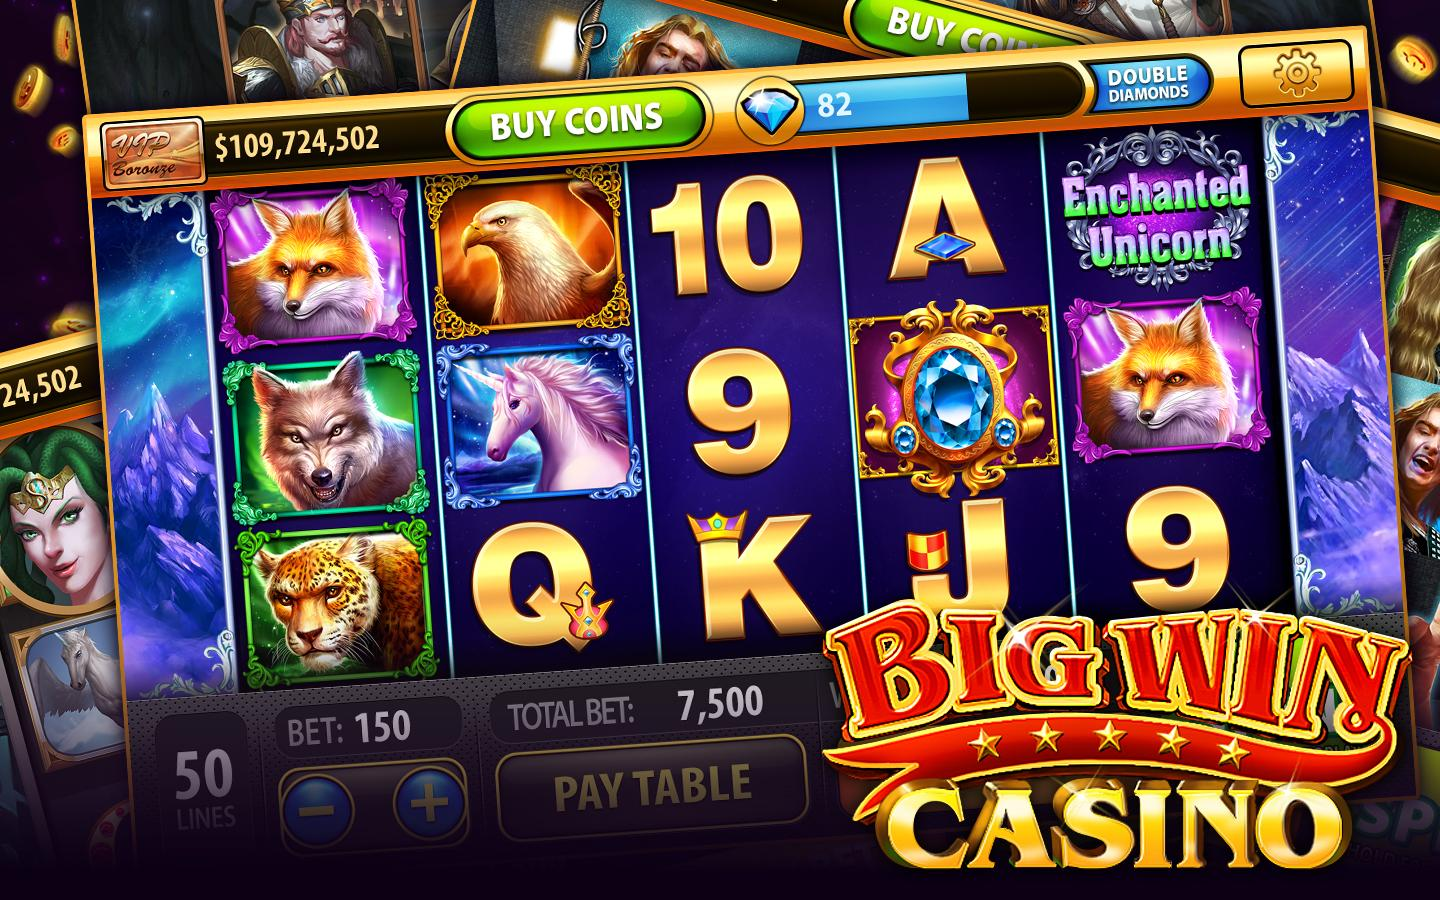 Galacnica Slots - Win Big Playing Online Casino Games